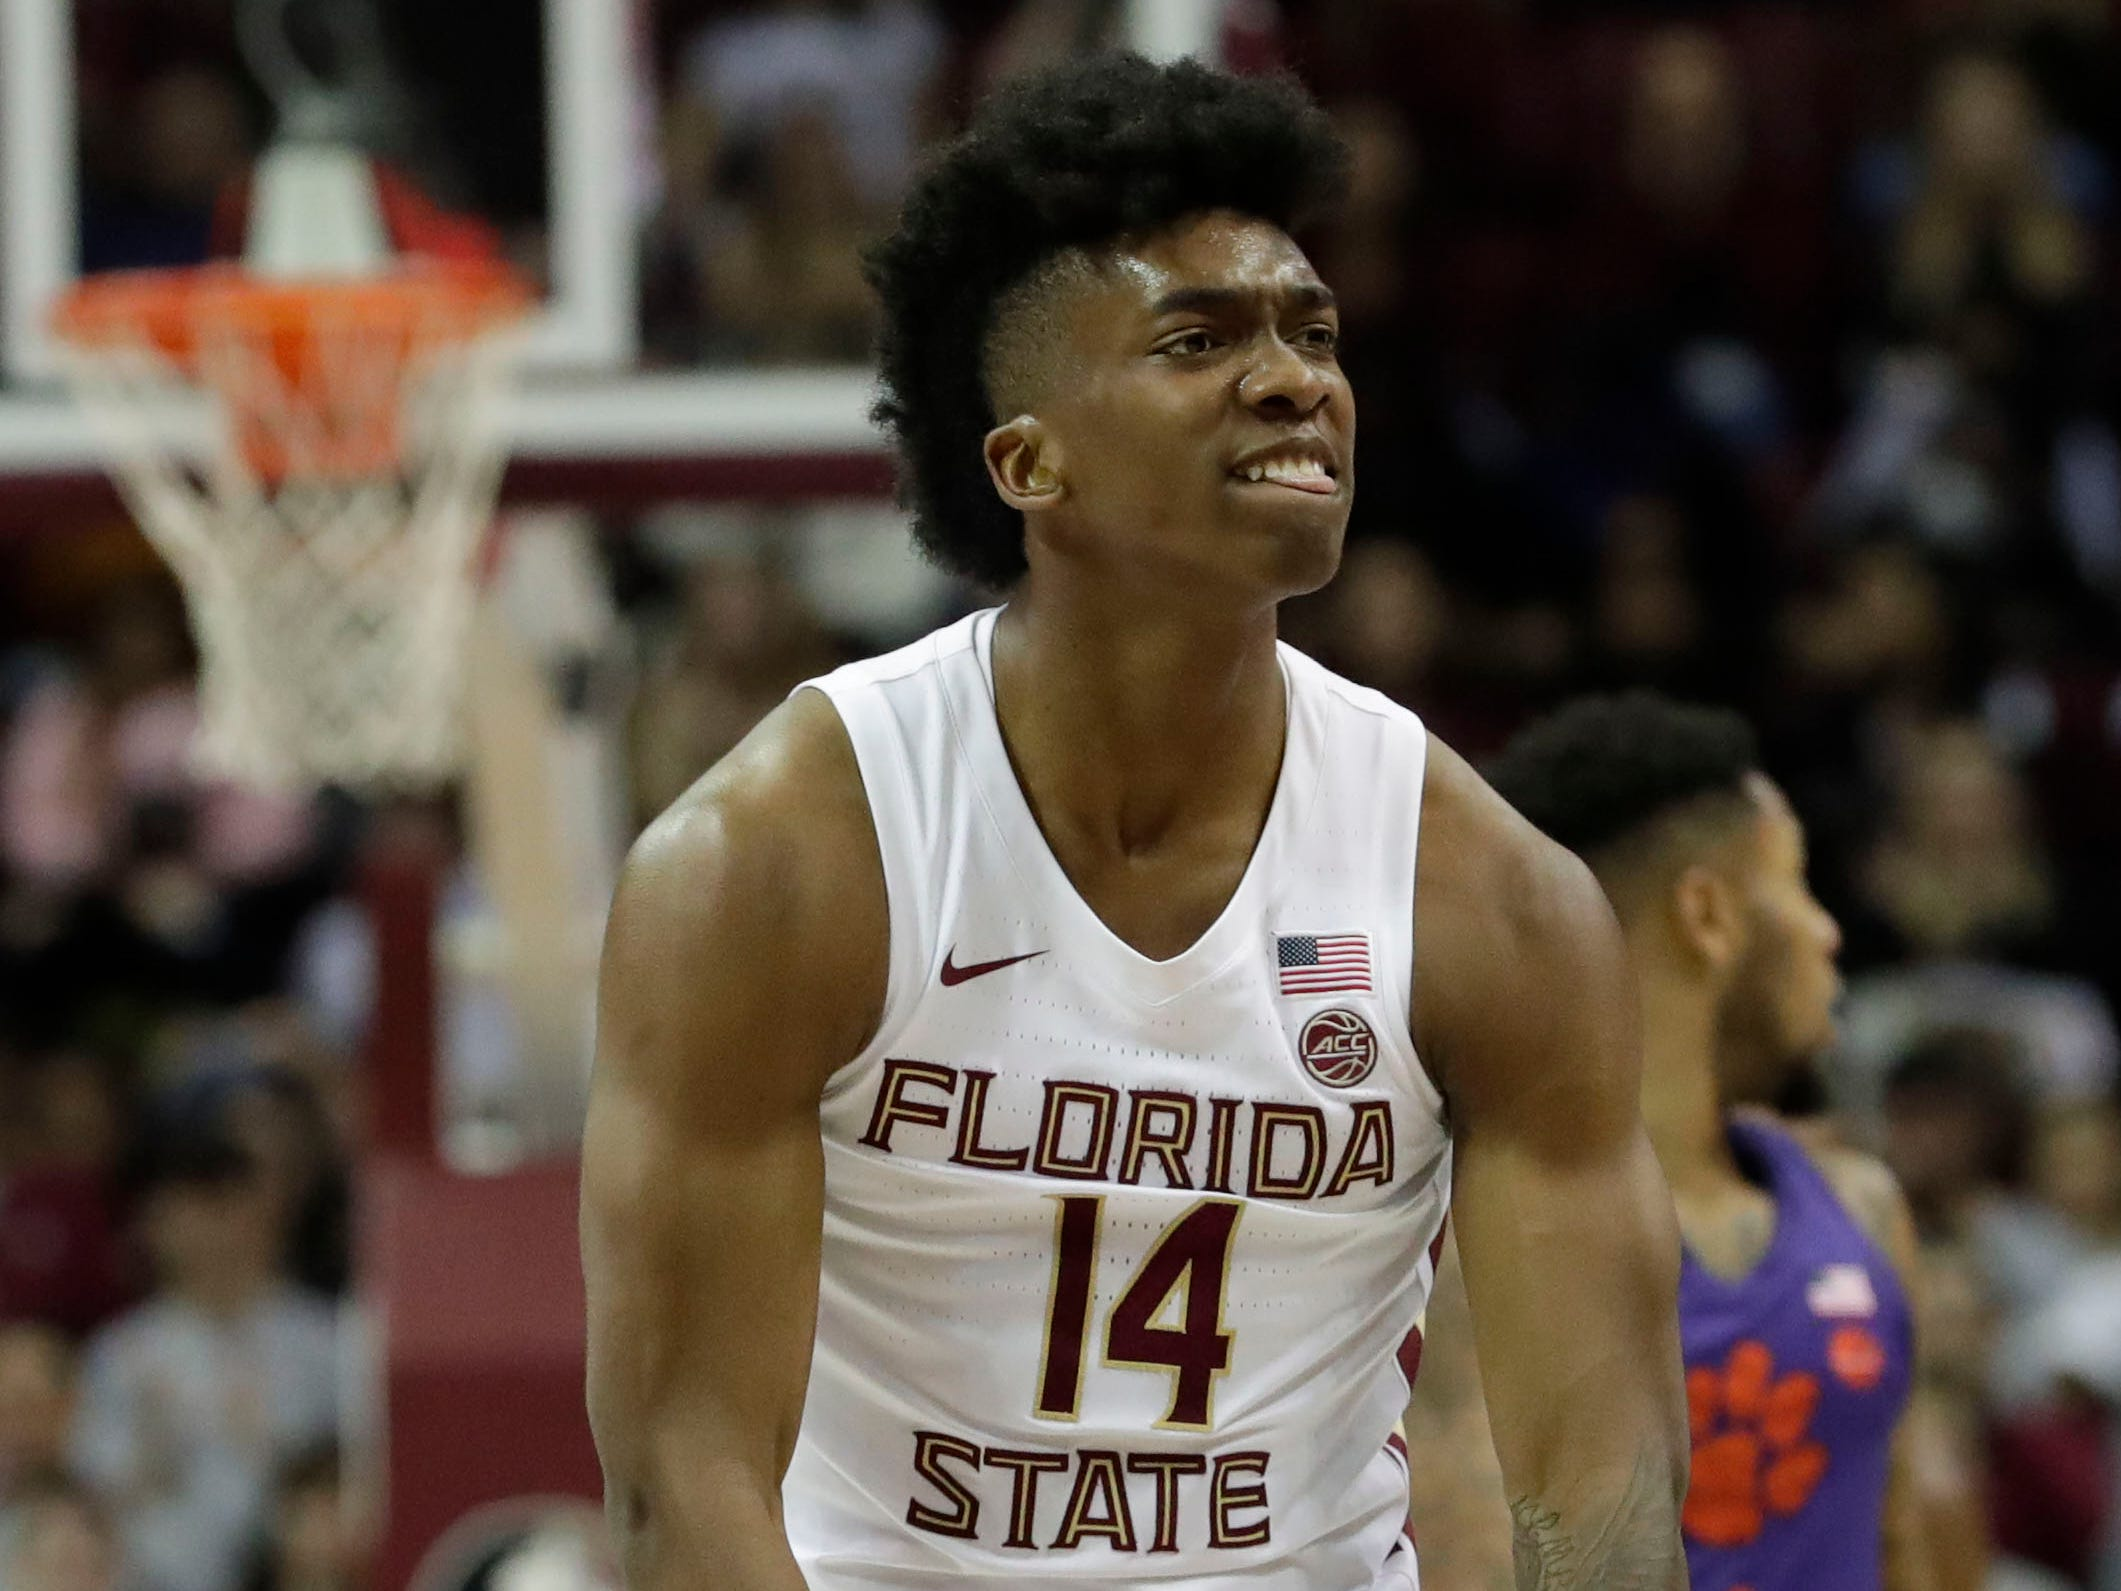 Florida State Seminoles guard Terance Mann (14) celebrates the Clemson shot clock running out. The Florida State Seminoles face off against the Clemson Tigers at the Tucker Civic Center, Tuesday, Jan. 22, 2019.